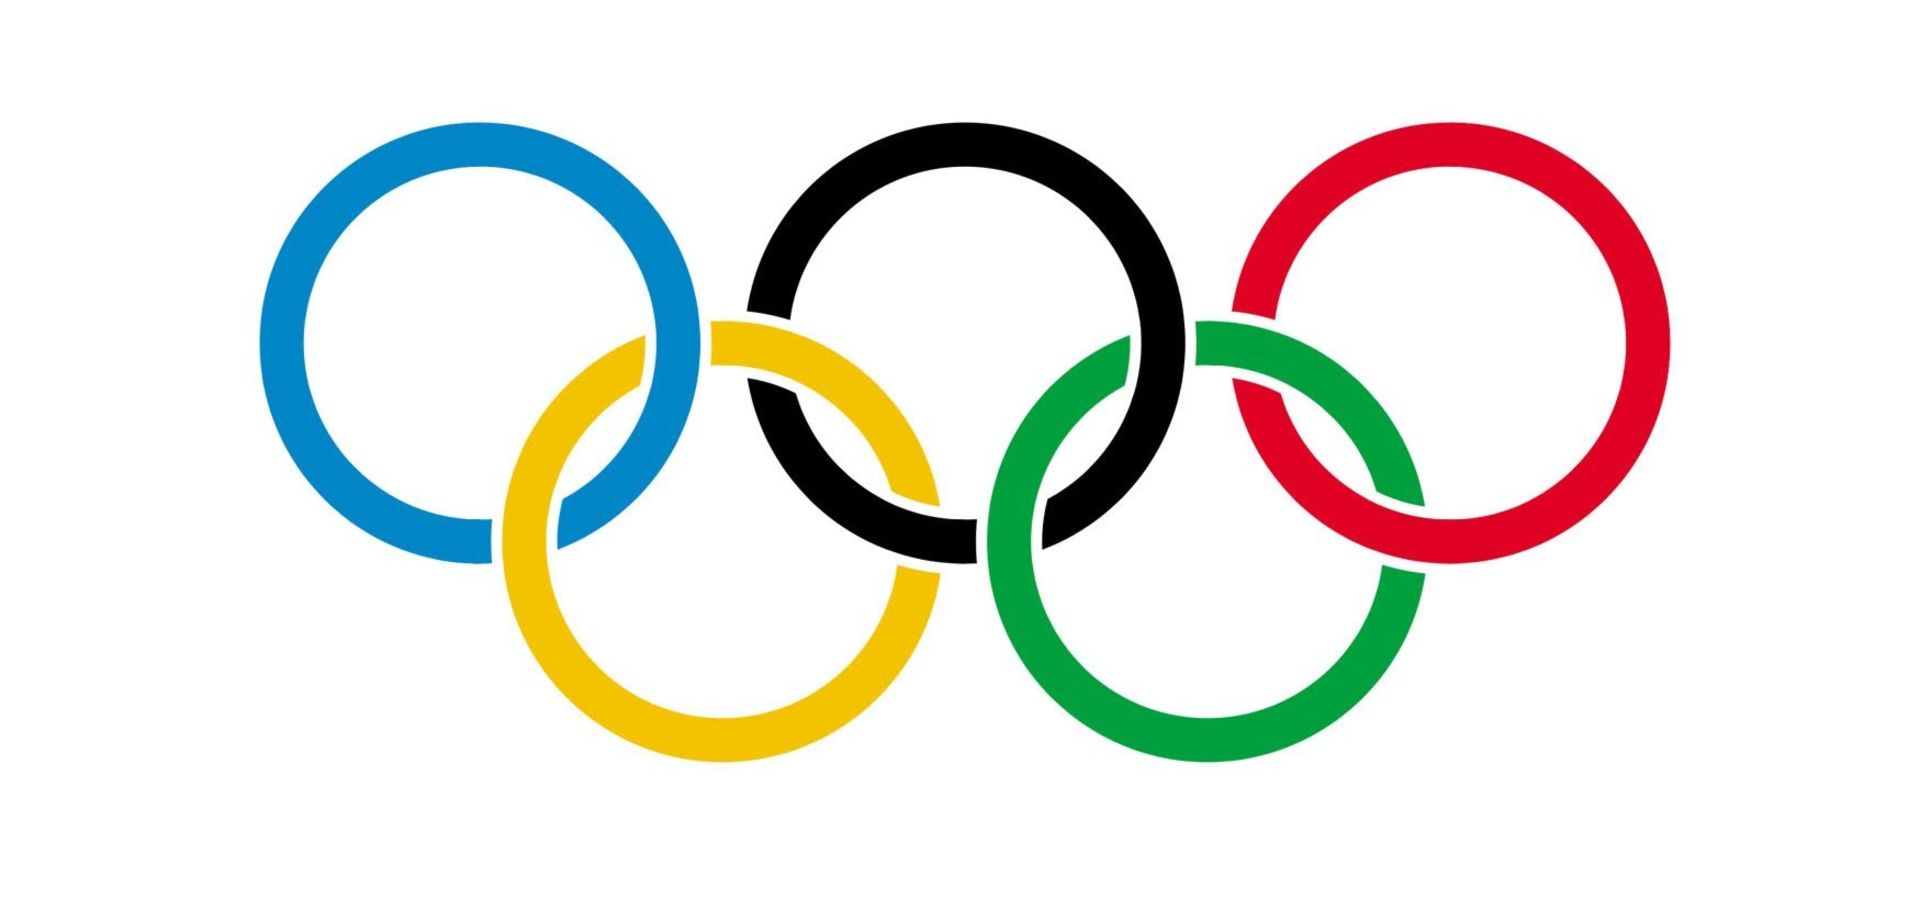 6 Tips to Purchasing a Home like an Olympian